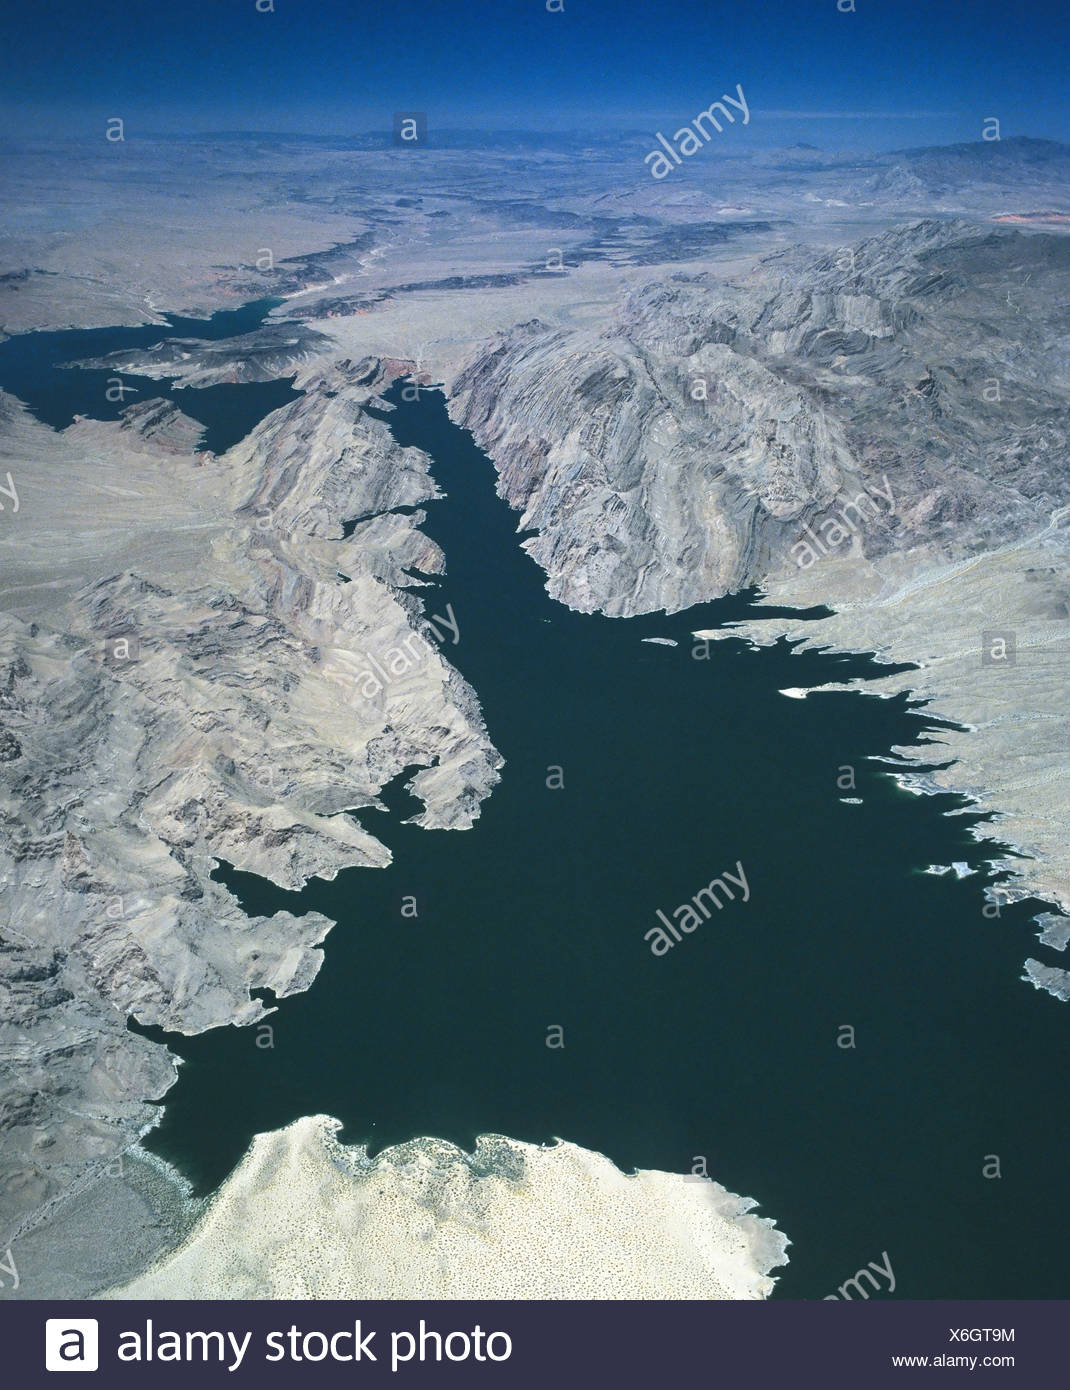 Lake Mead Reservoir, aerial view, Hoover Dam, Nevada, USA Stock Photo